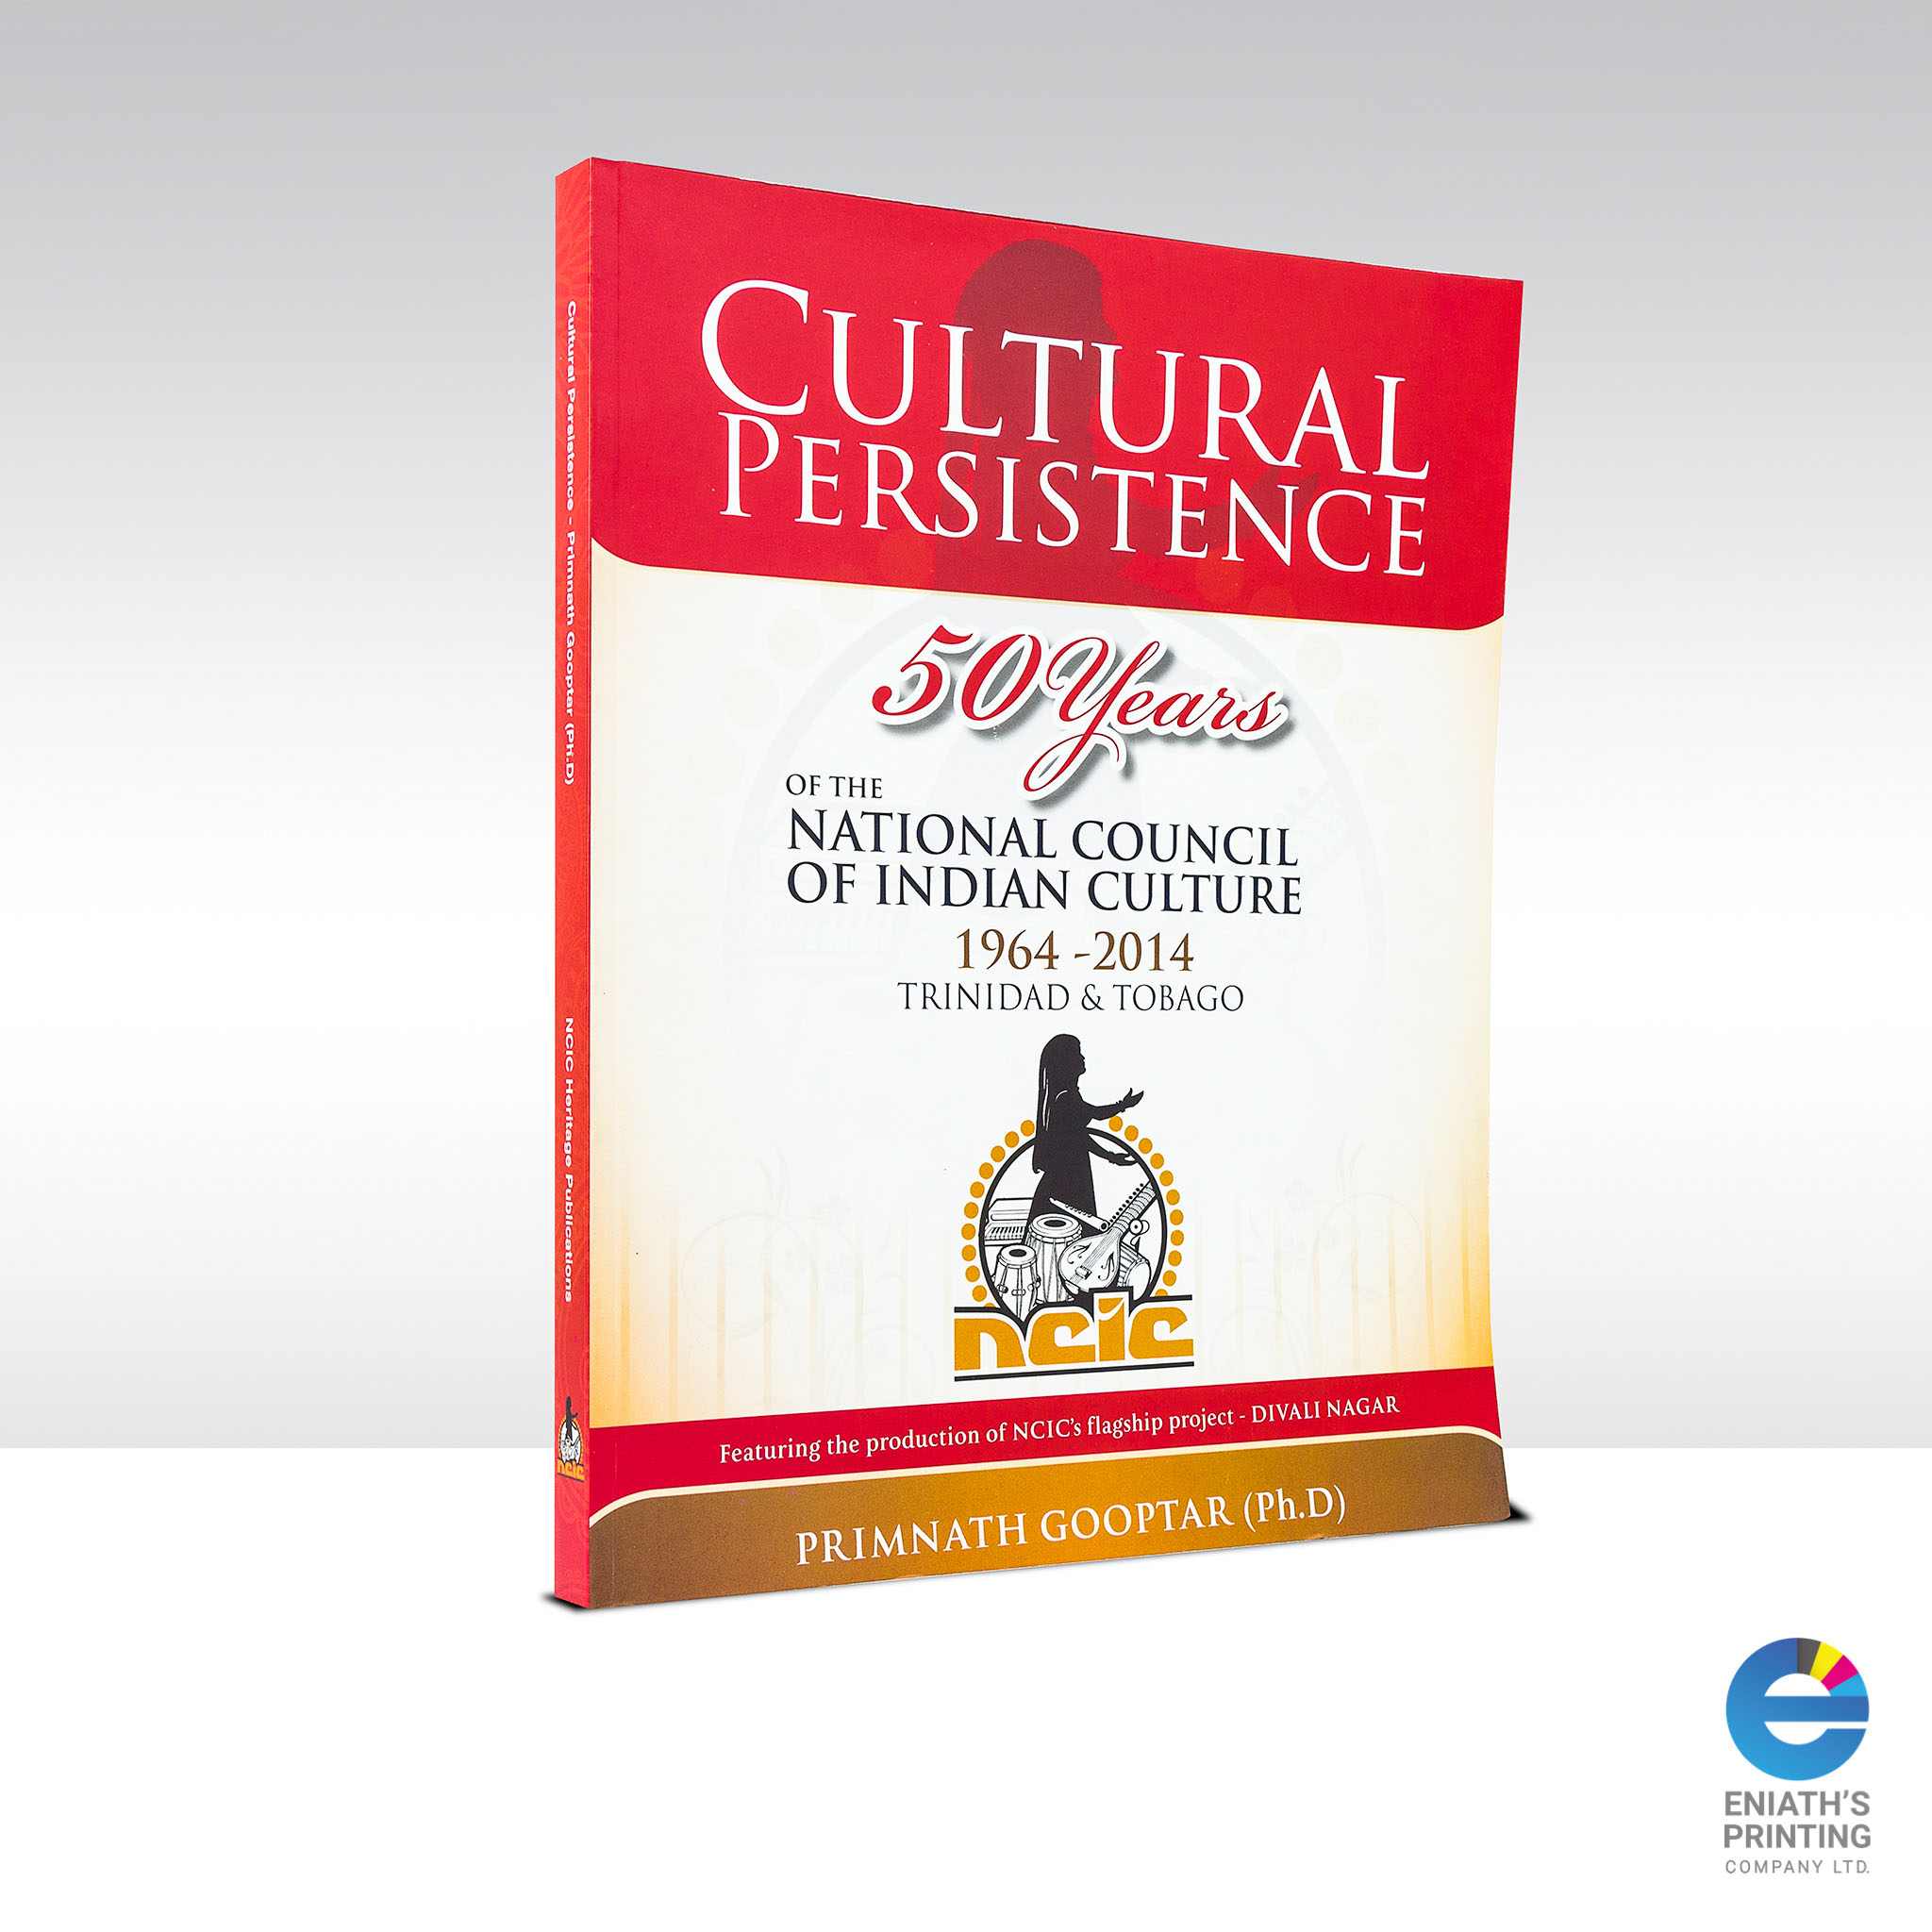 Cultural Persistence - Printed by Eniath's Printing Co. Ltd.